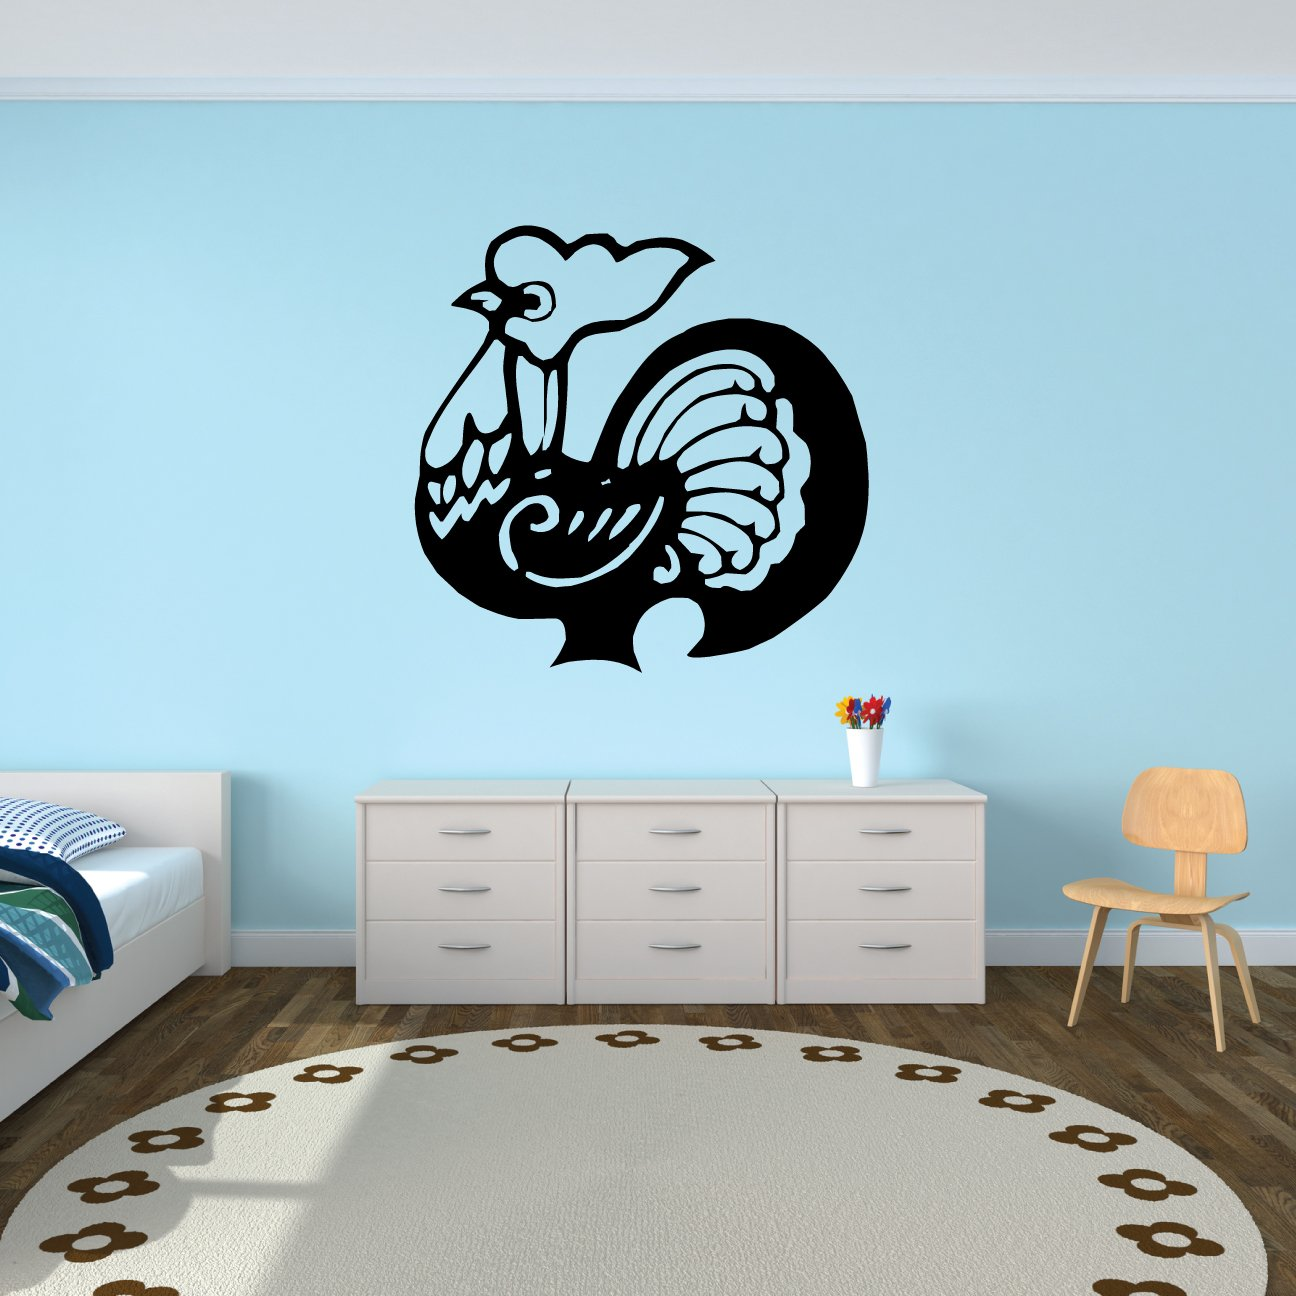 Amazon.com: Rooster Chinese Zodiac Wall Decal Sticker - Decal ...